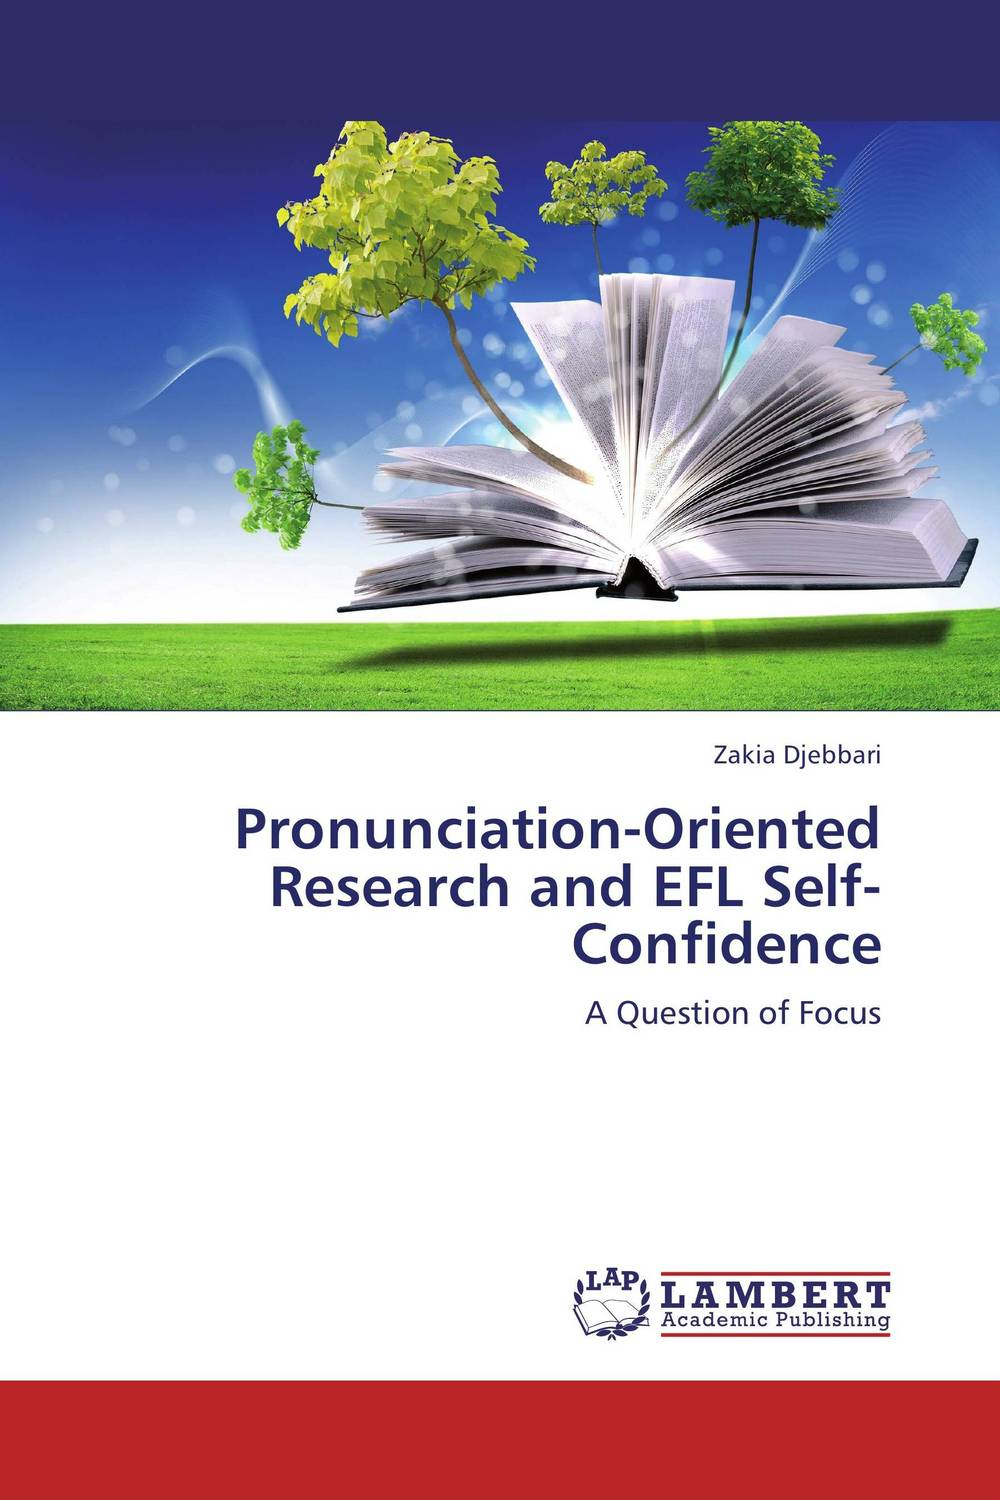 Pronunciation-Oriented Research and EFL Self-Confidence language change and lexical variation in youth language